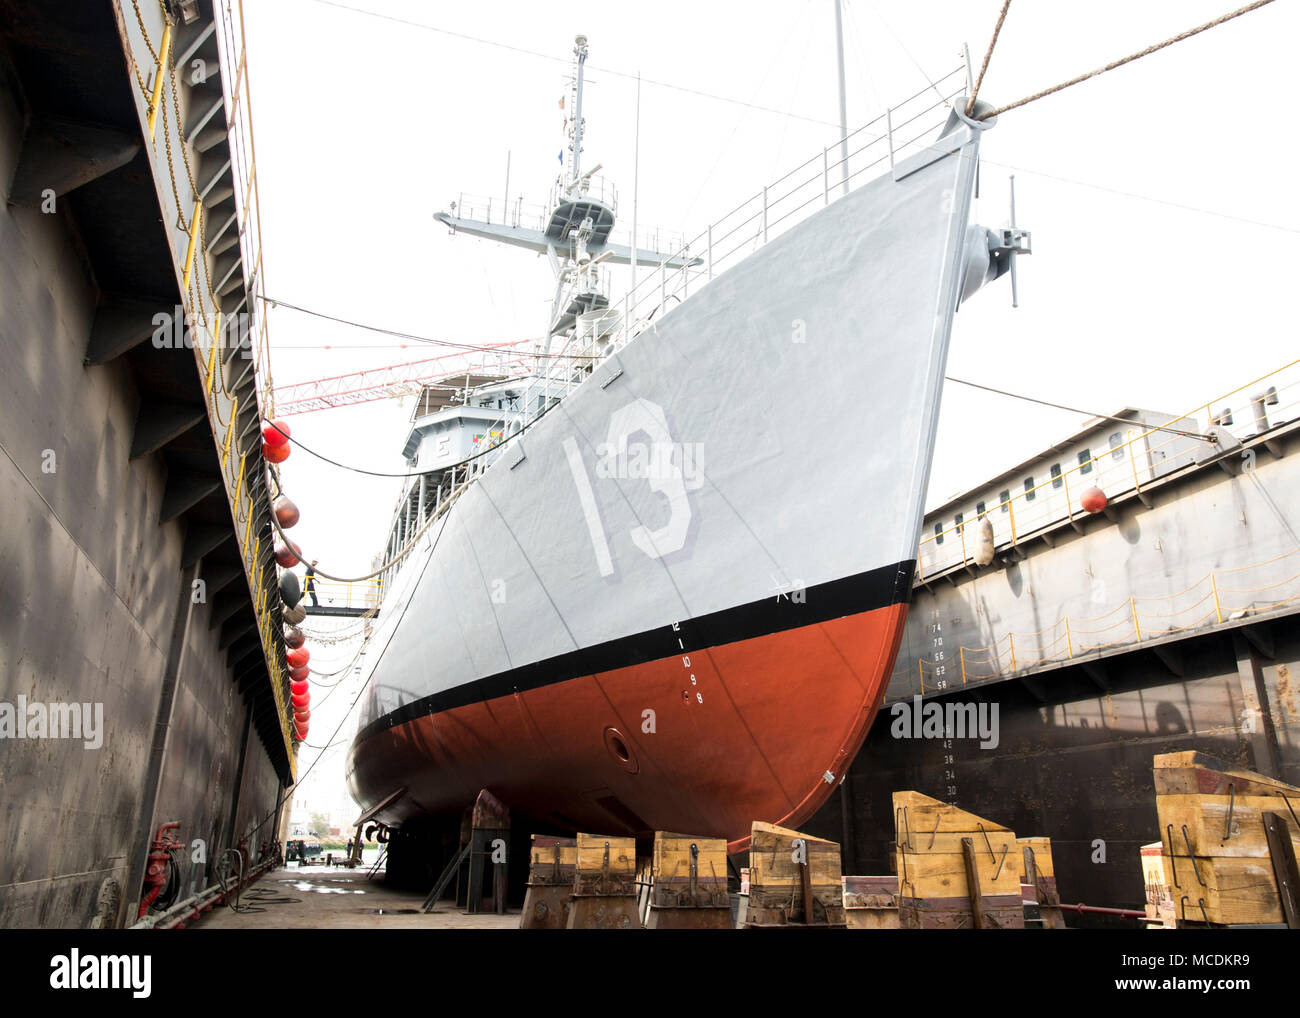 The mine countermeasures ship USS Dextrous (MCM 13) sits in dry dock for maintenance at Manama, Bahrain, Feb. 21, 2018. Dextrous is part of Naval Surface Squadron (CNSS) 5, which serves as the surface type commander's executive agent in Bahrain and provides support to 10 Cyclone-class coastal patrol ships and four Avenger-class mine countermeasures ships. (U.S. Navy photo by Mass Communication Specialist 2nd Class Victoria Kinney) - Stock Image